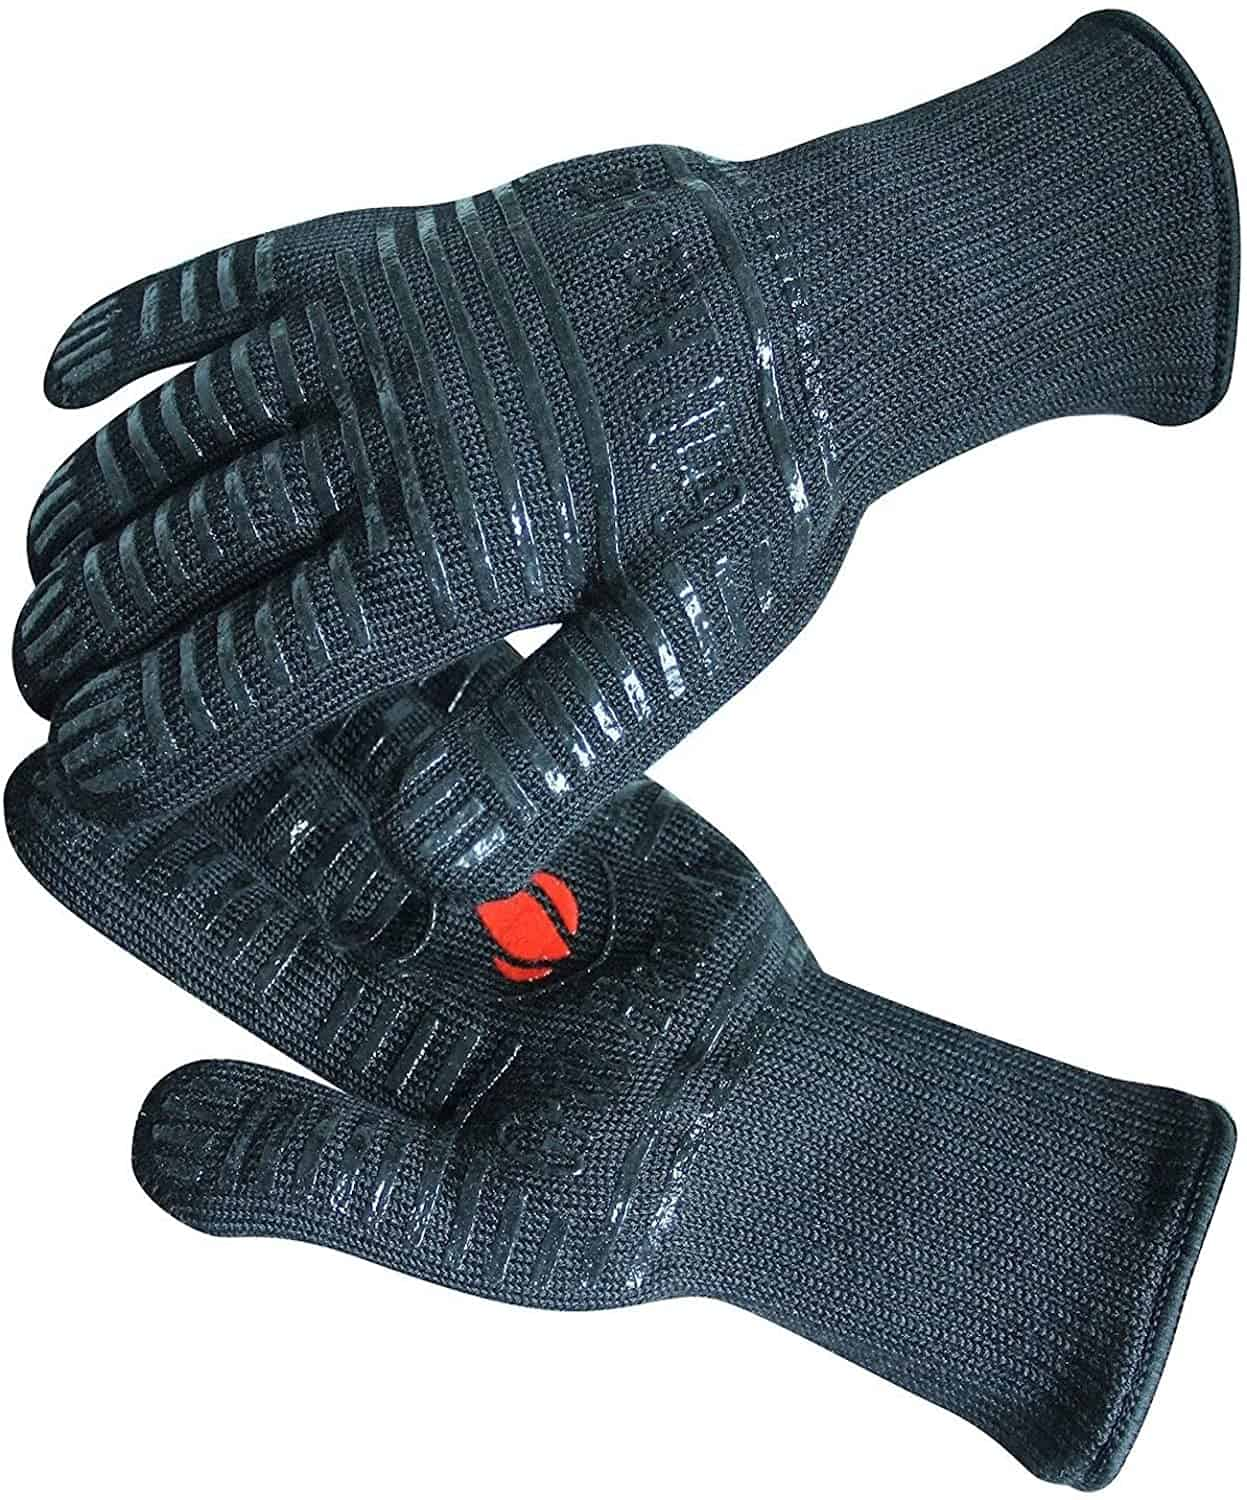 Best BBQ gloves overall- GRILL HEAT AID Extreme Heat Resistant